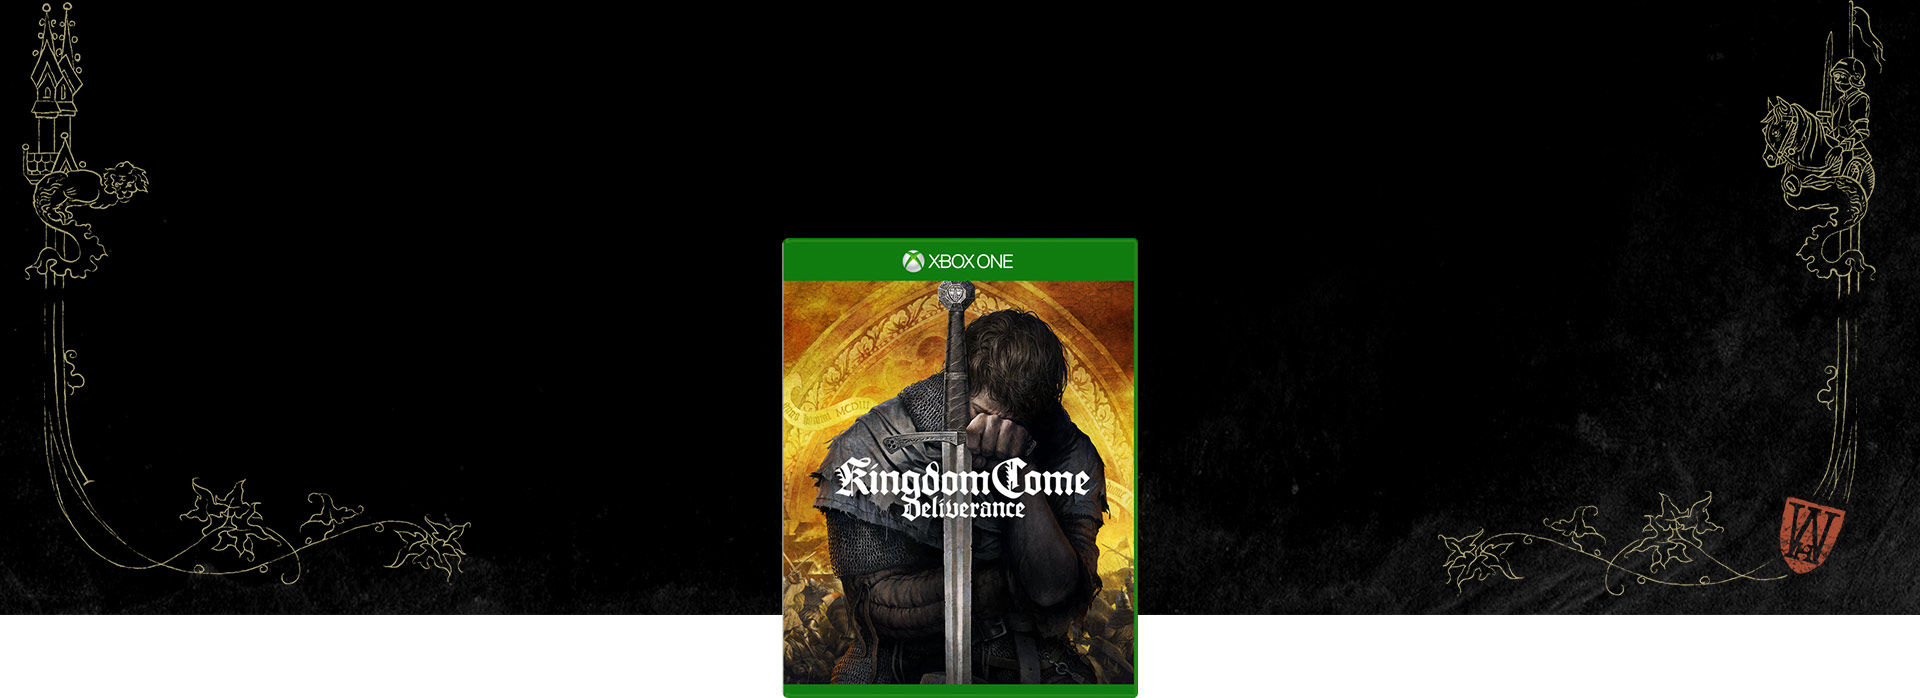 Kingdom Come: Deliverance boxshot with ornate design in background.